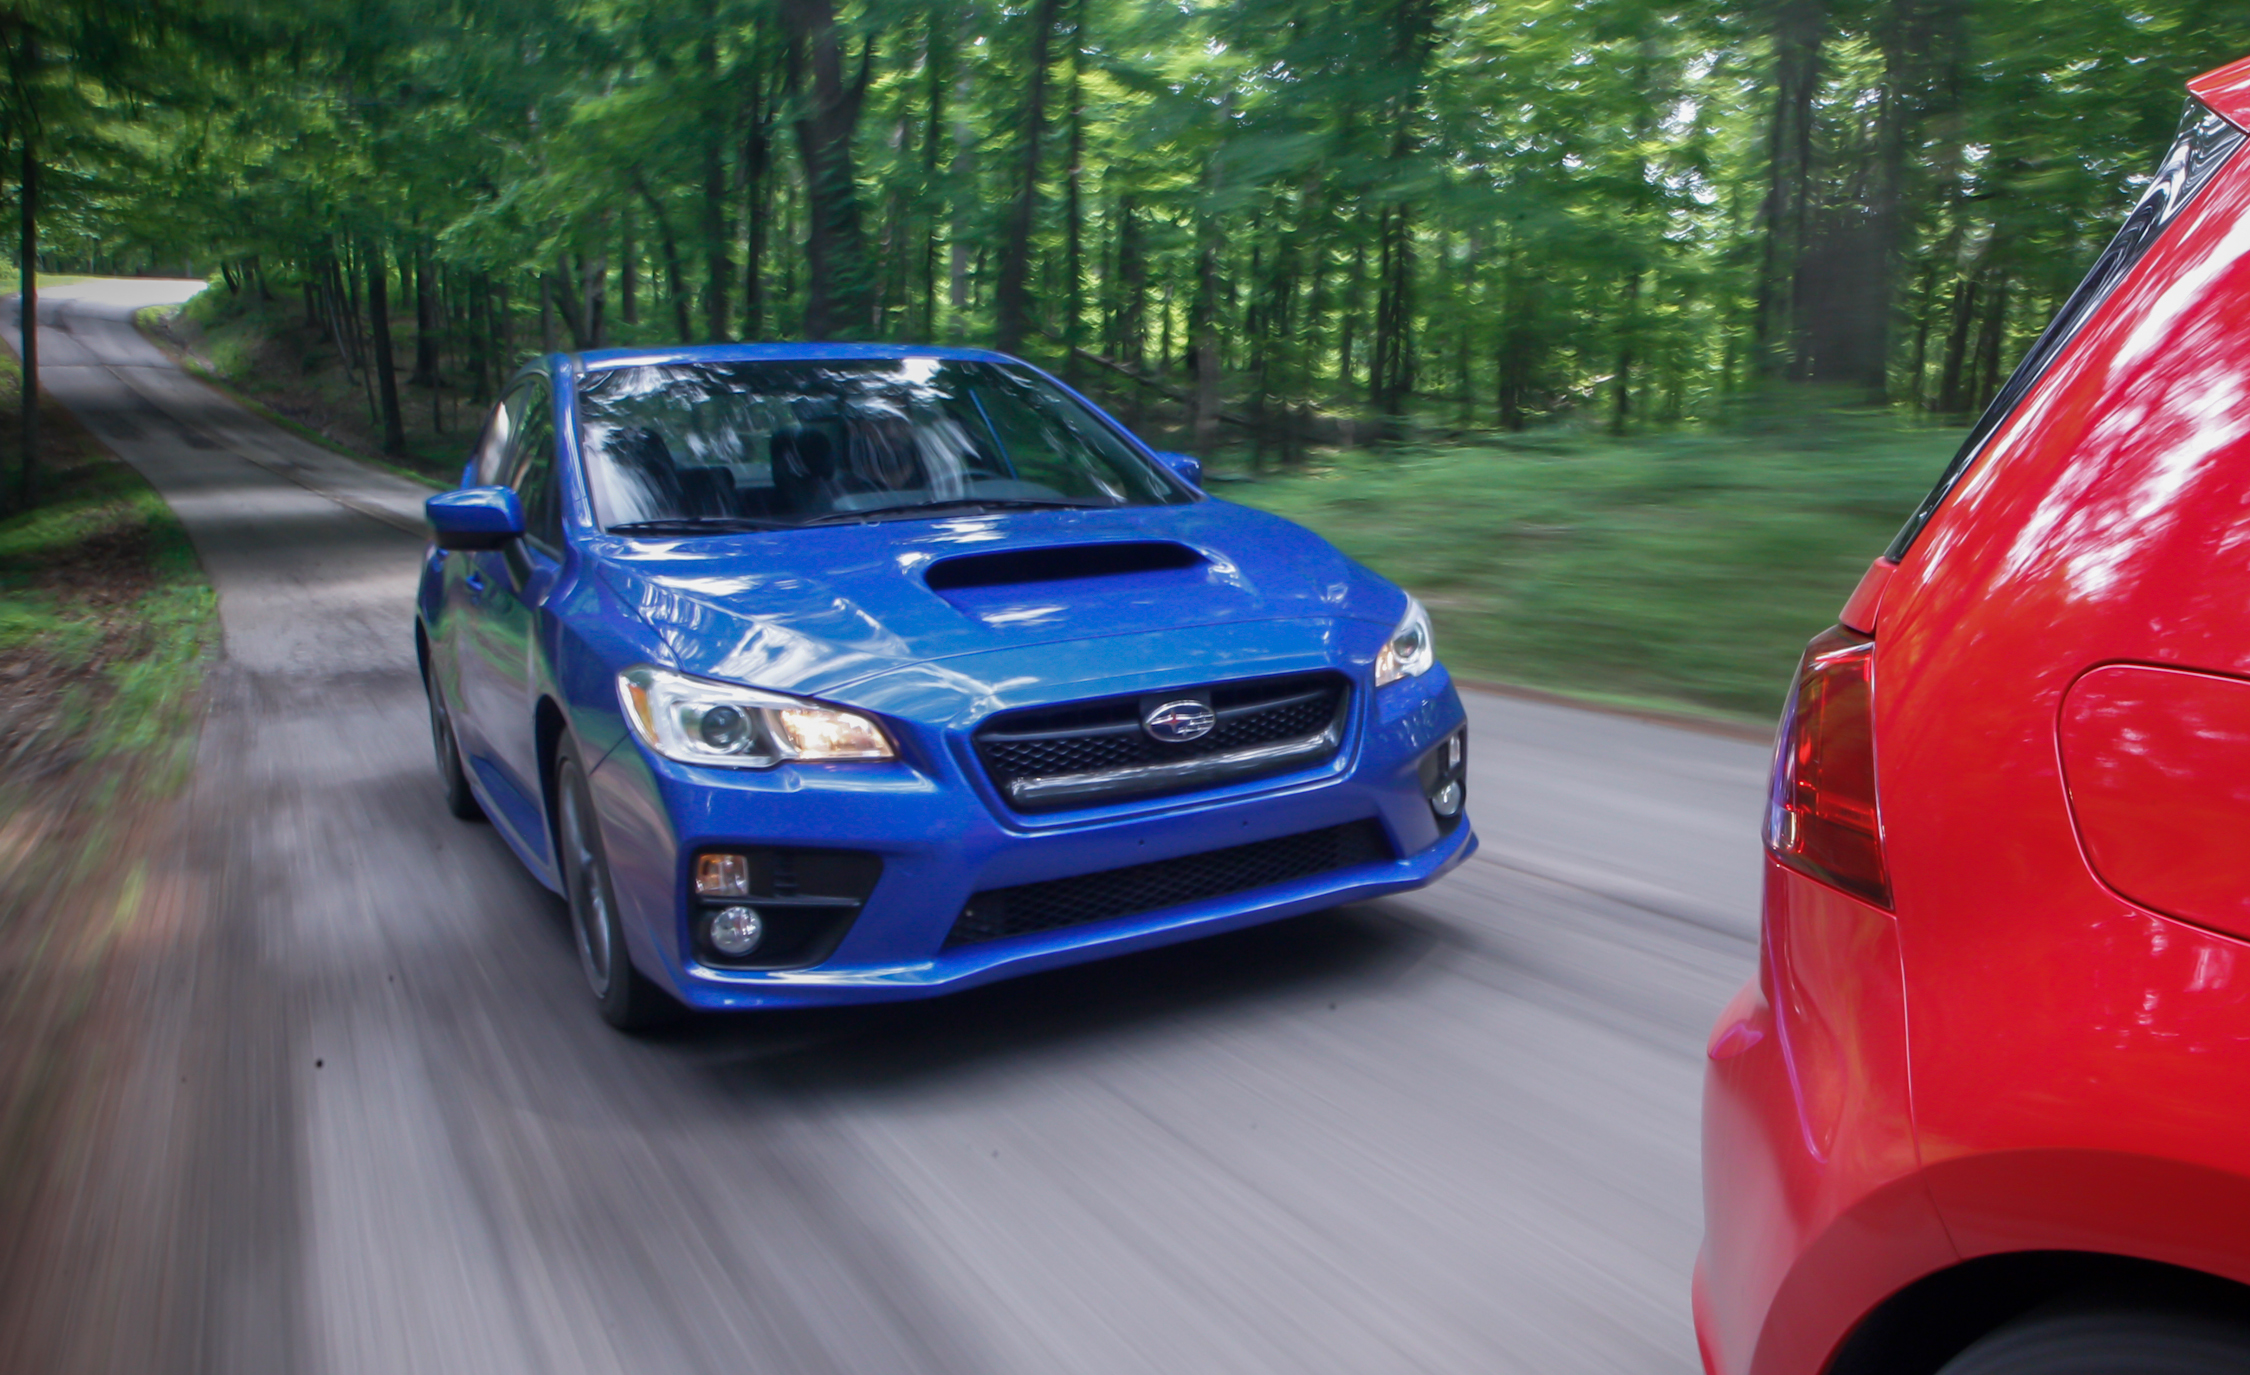 Subaru WRX 2015 Performance Test